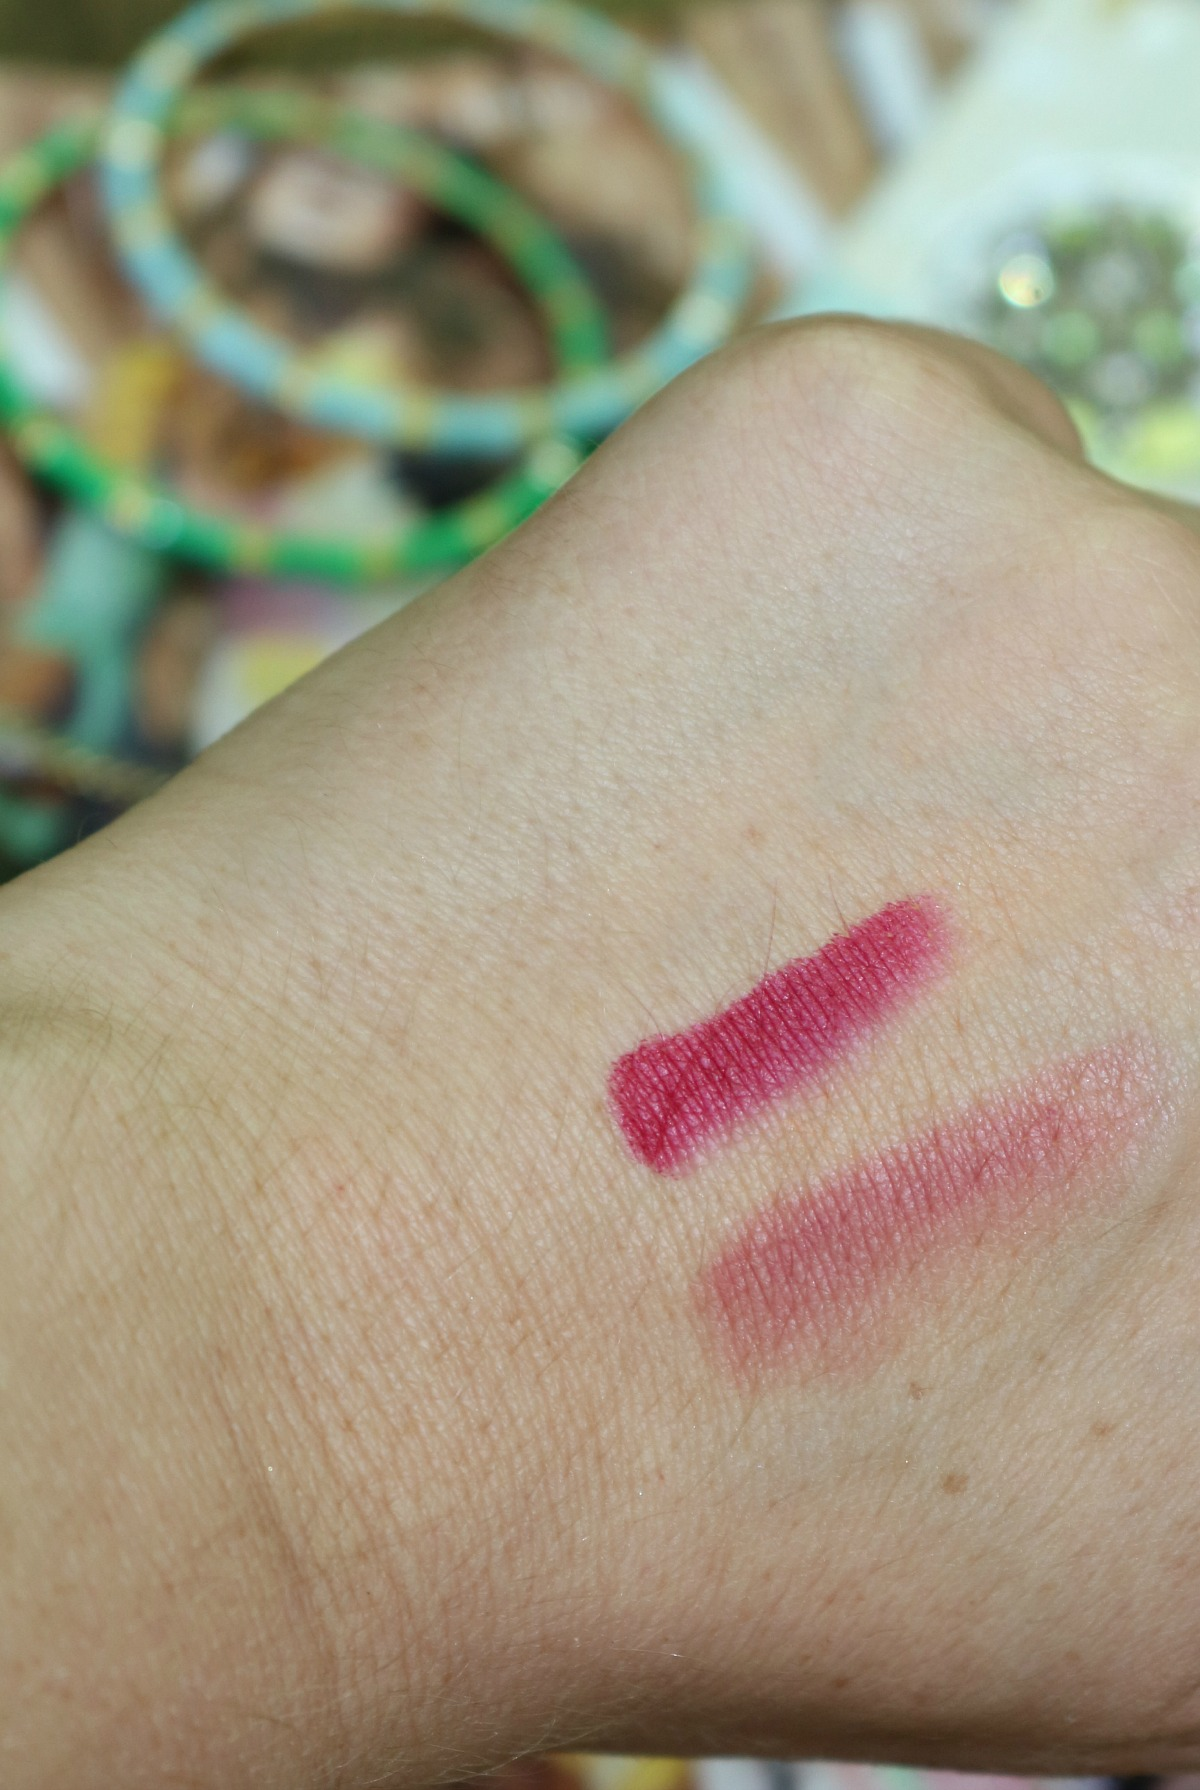 New Buxom Pillow Pout LIpstick Review + Swatches #Makeup #Lipstick #CrueltyFreeBeauty